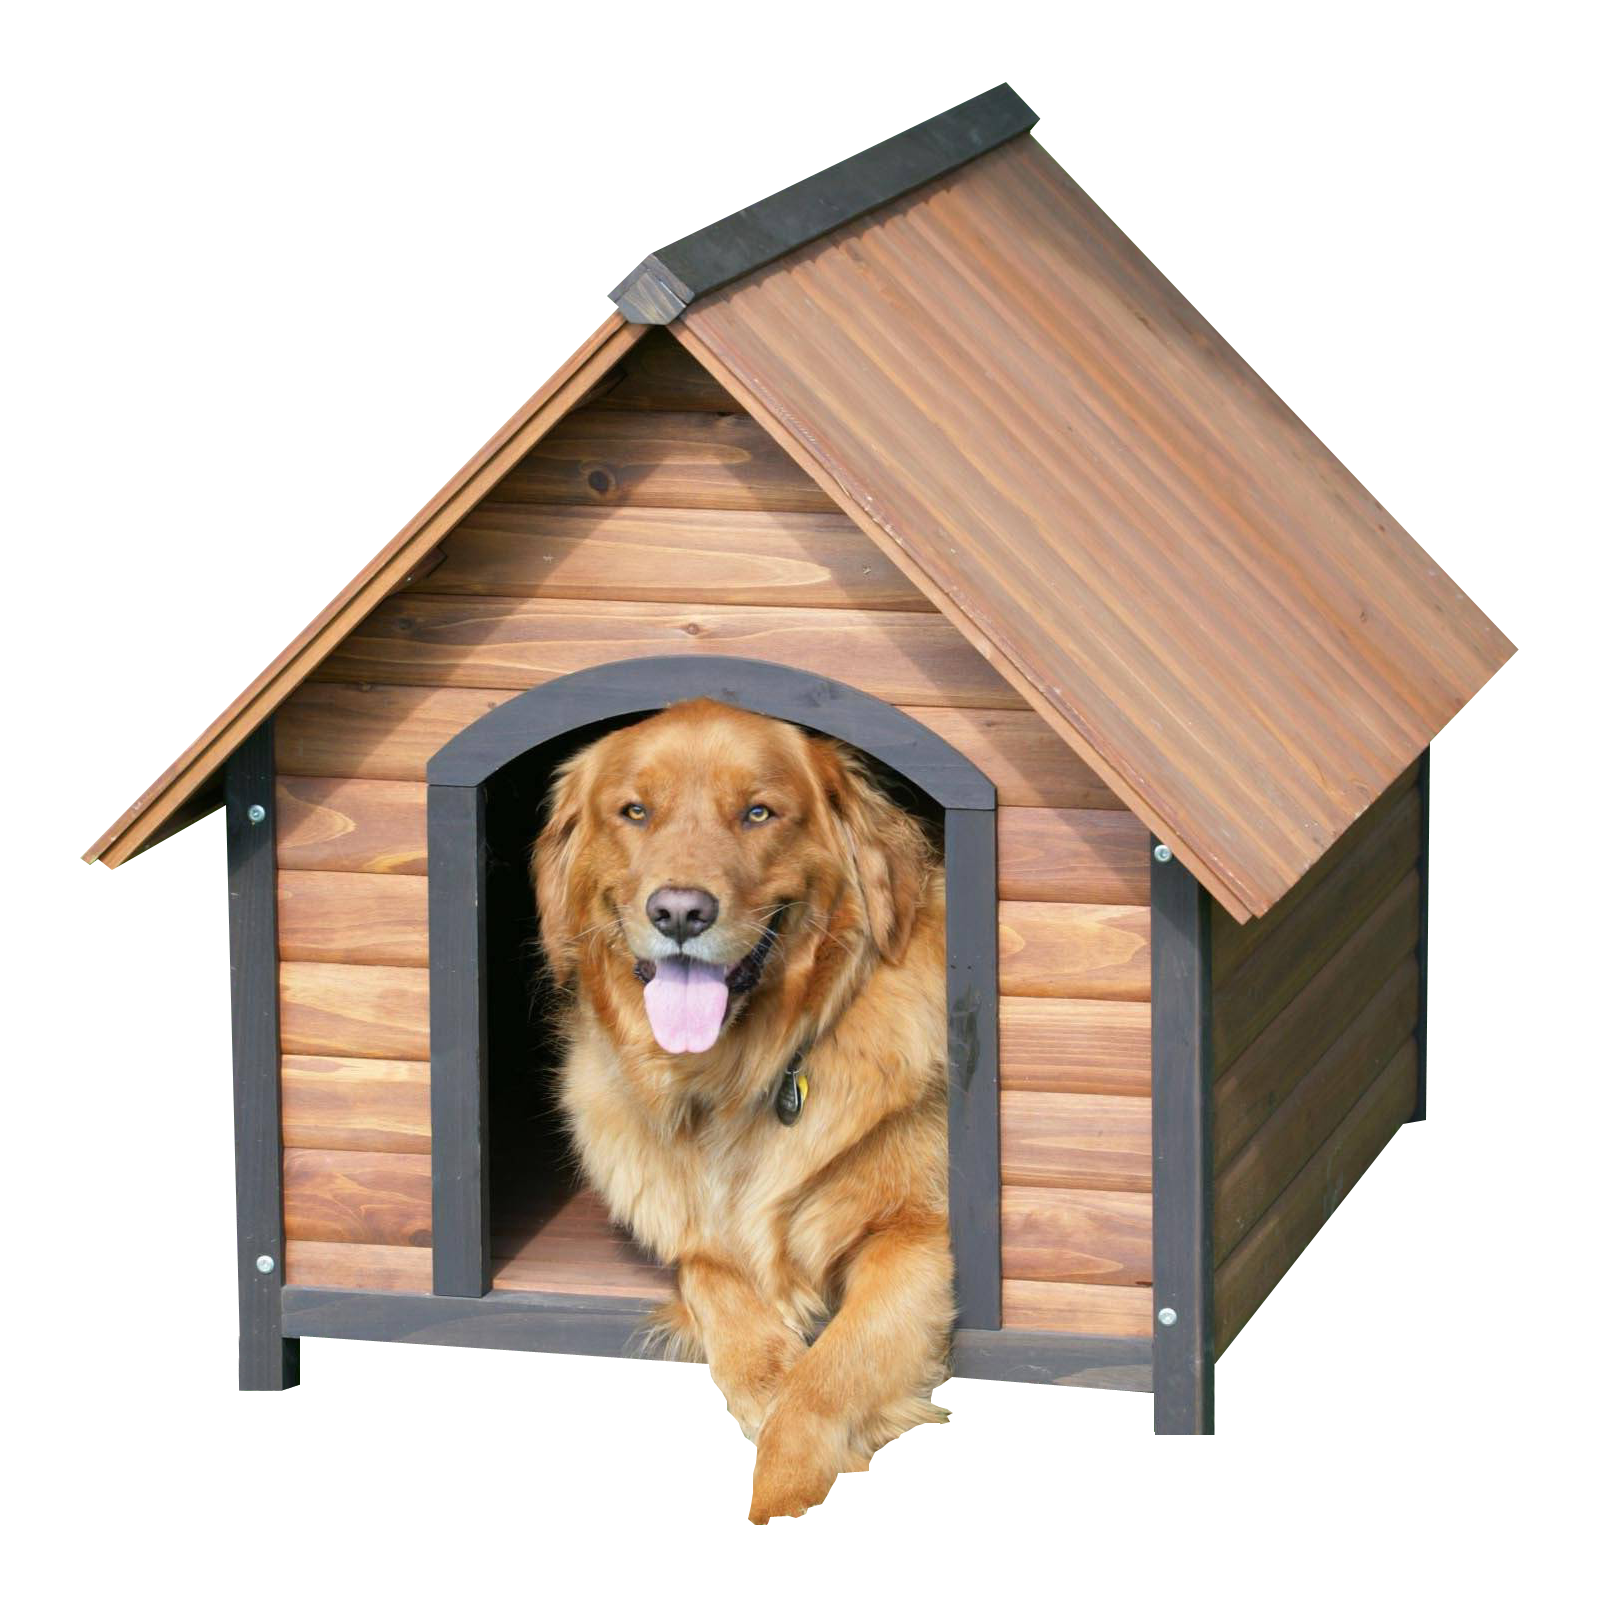 Dog png image purepng. Doghouse clipart pet house